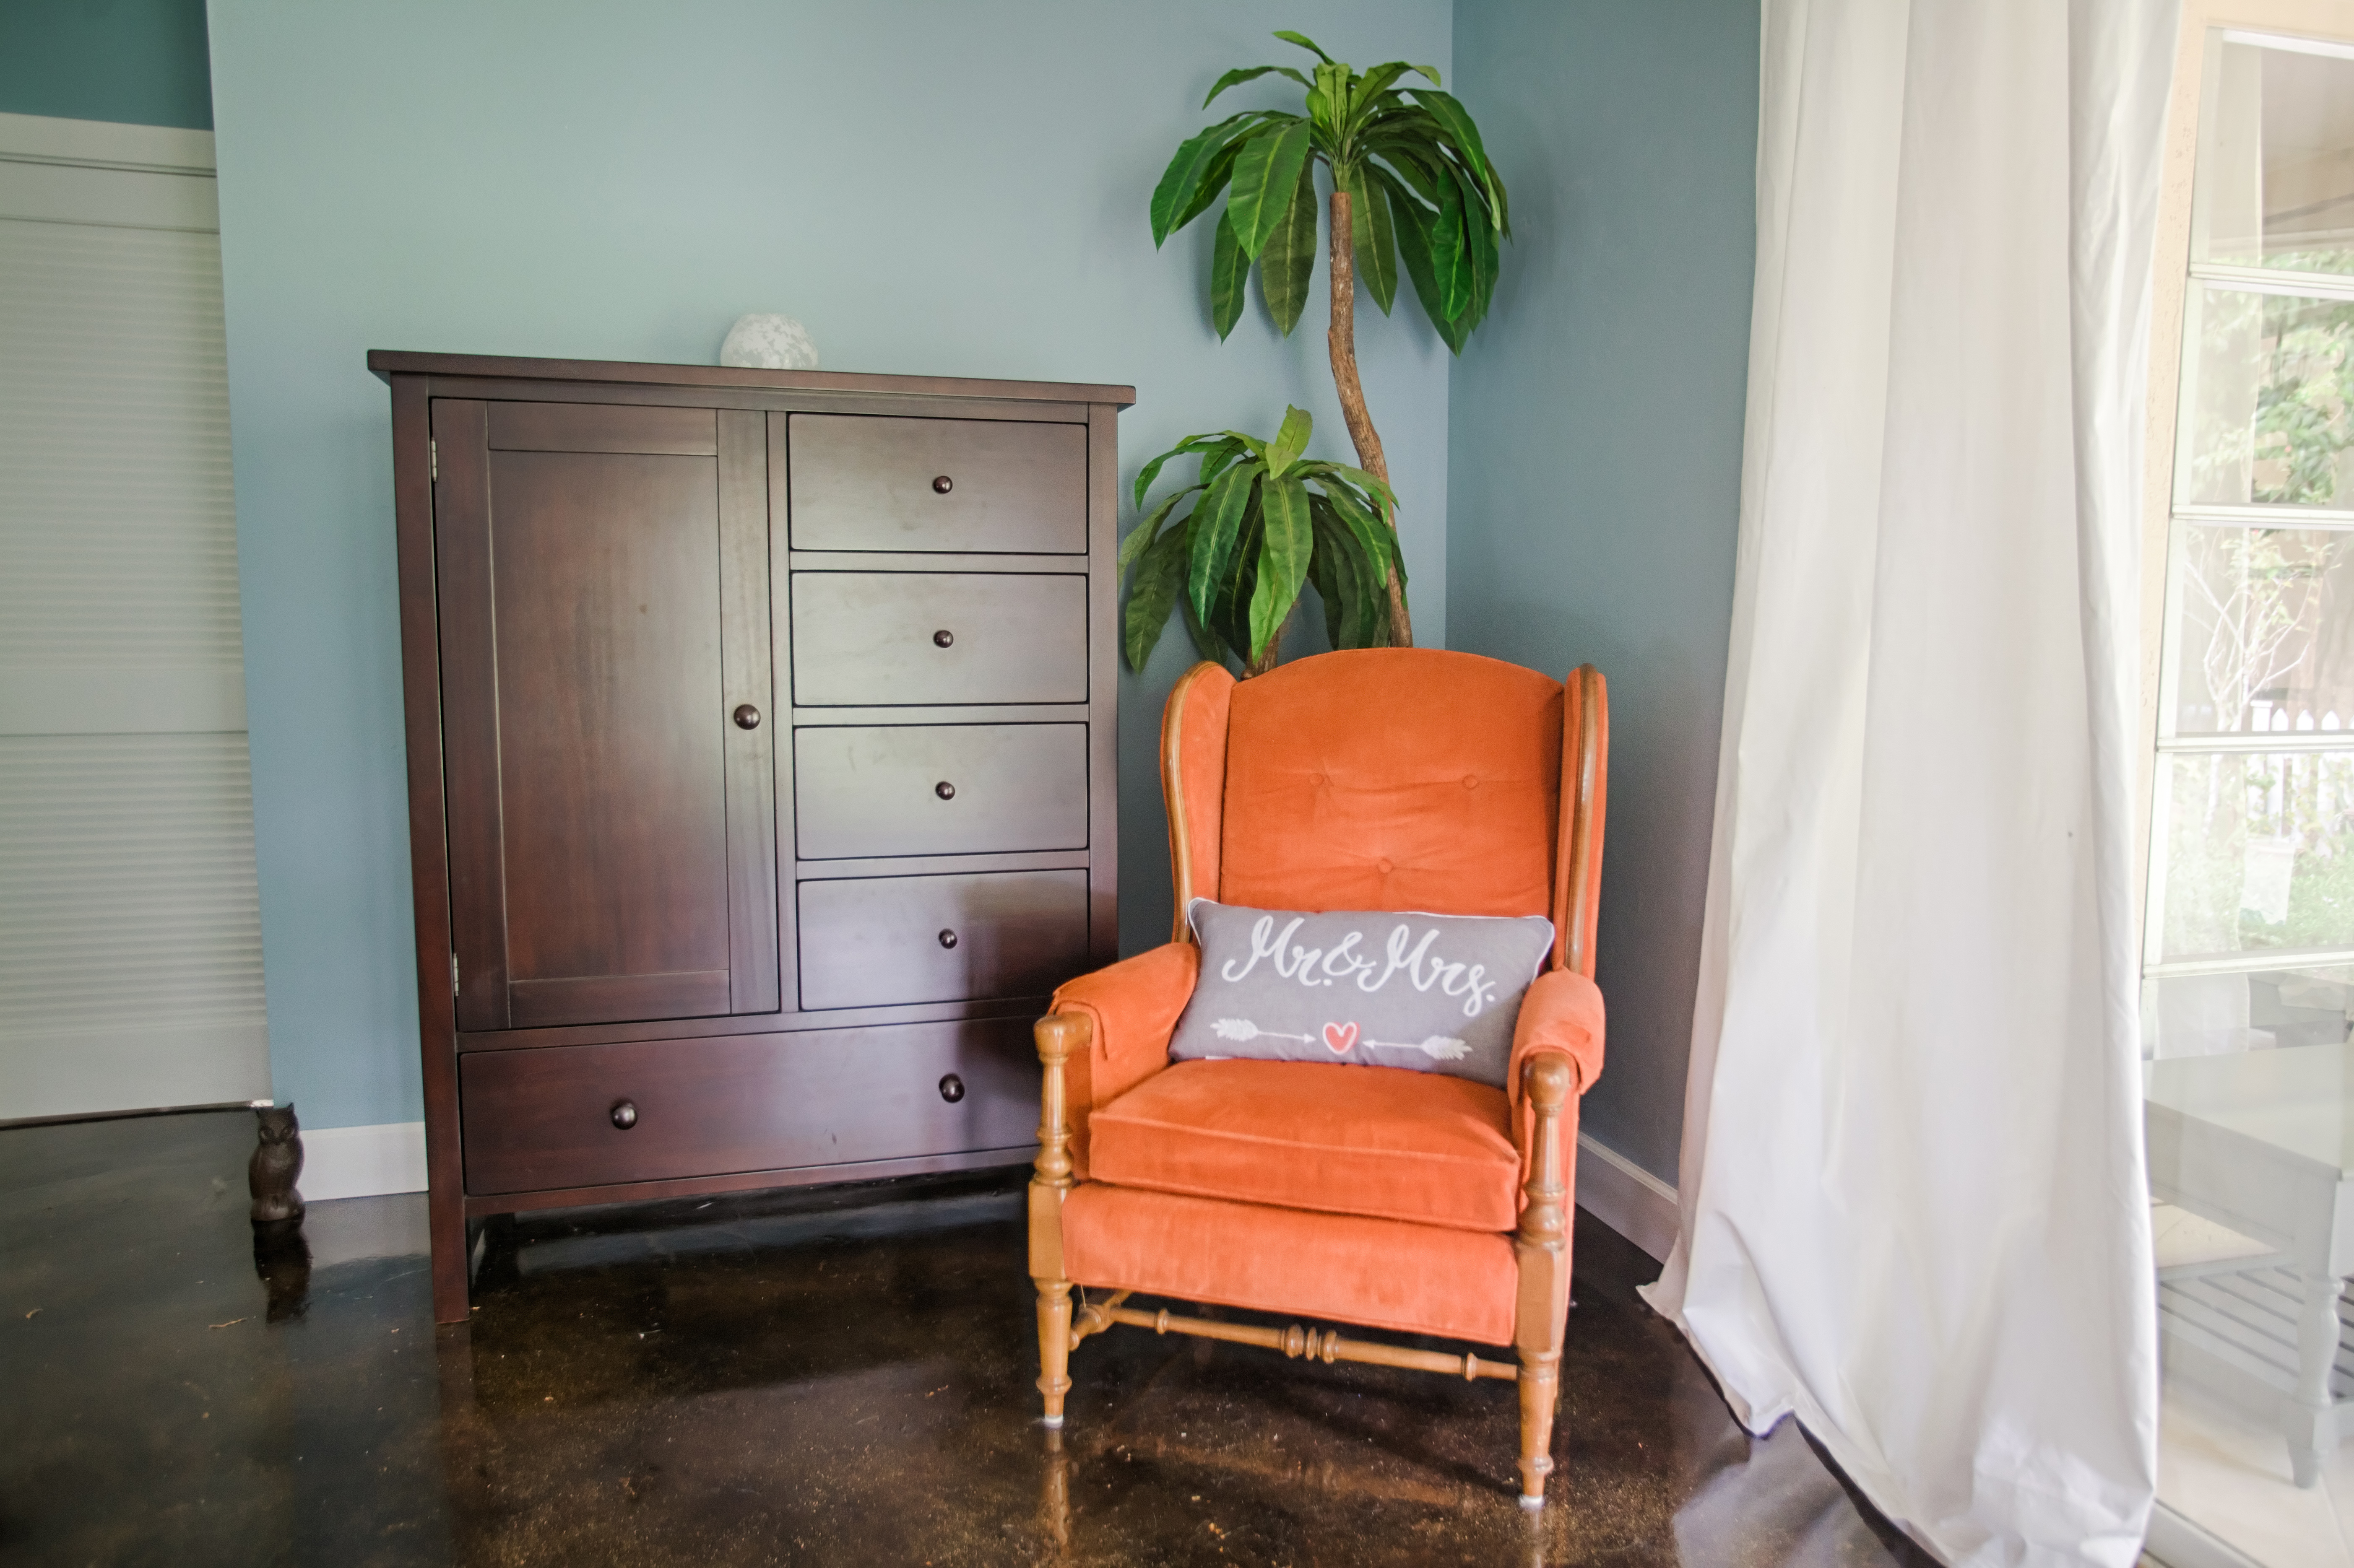 An orange chair - a family heirloom - provides a pop of color in the master bedroom